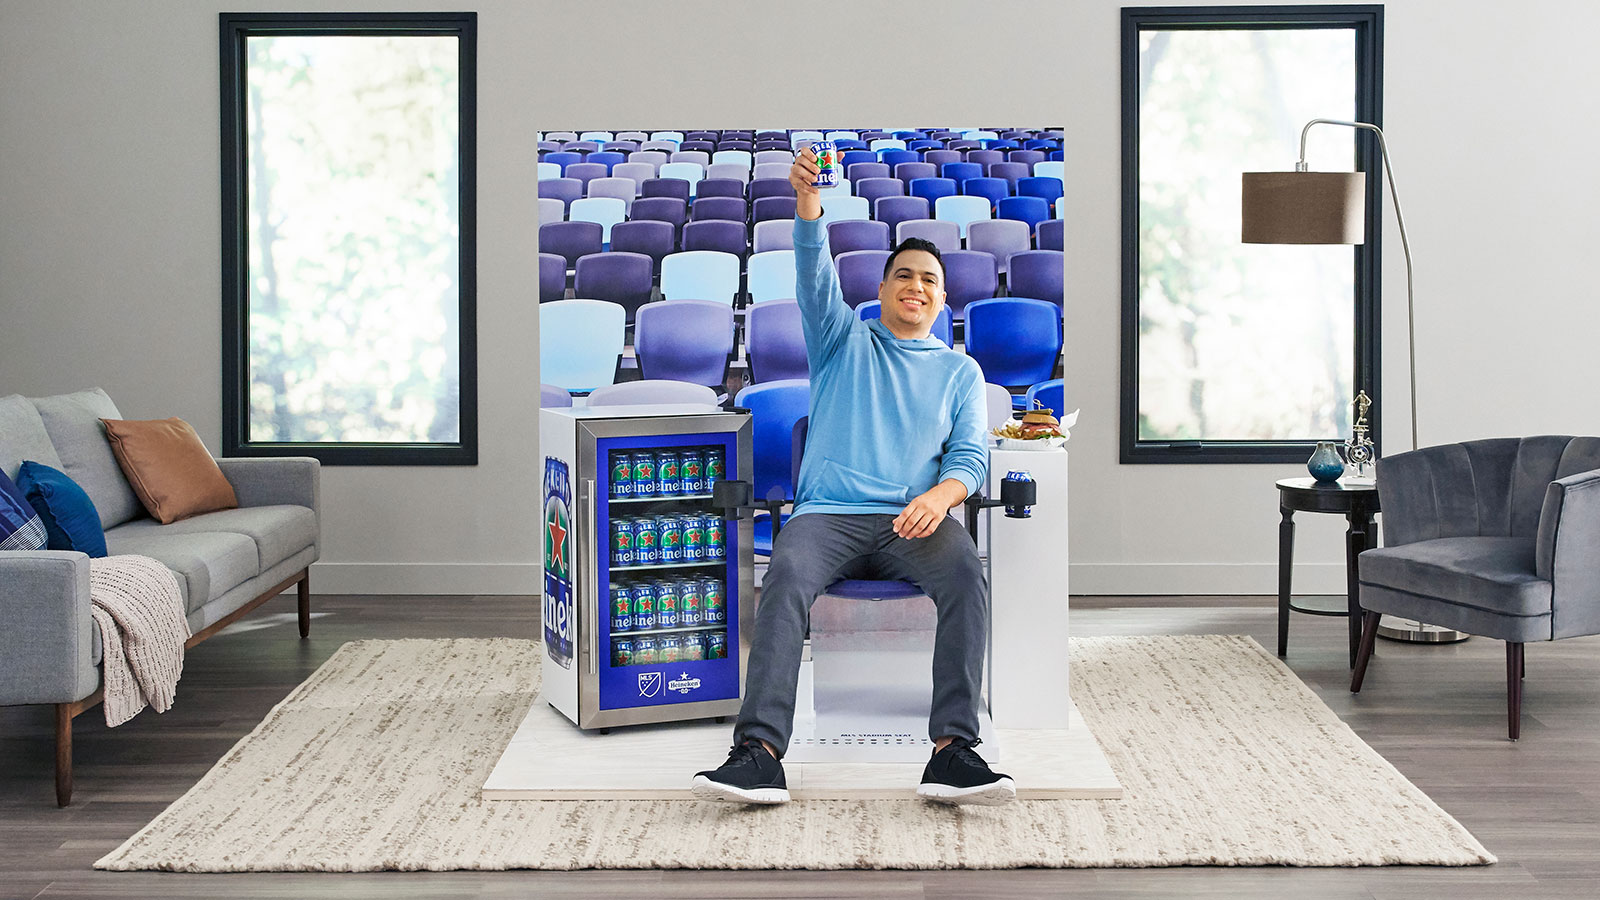 Heineken Sends Real Stadium Seats to MLS Fans Watching at Home | Muse by Clio